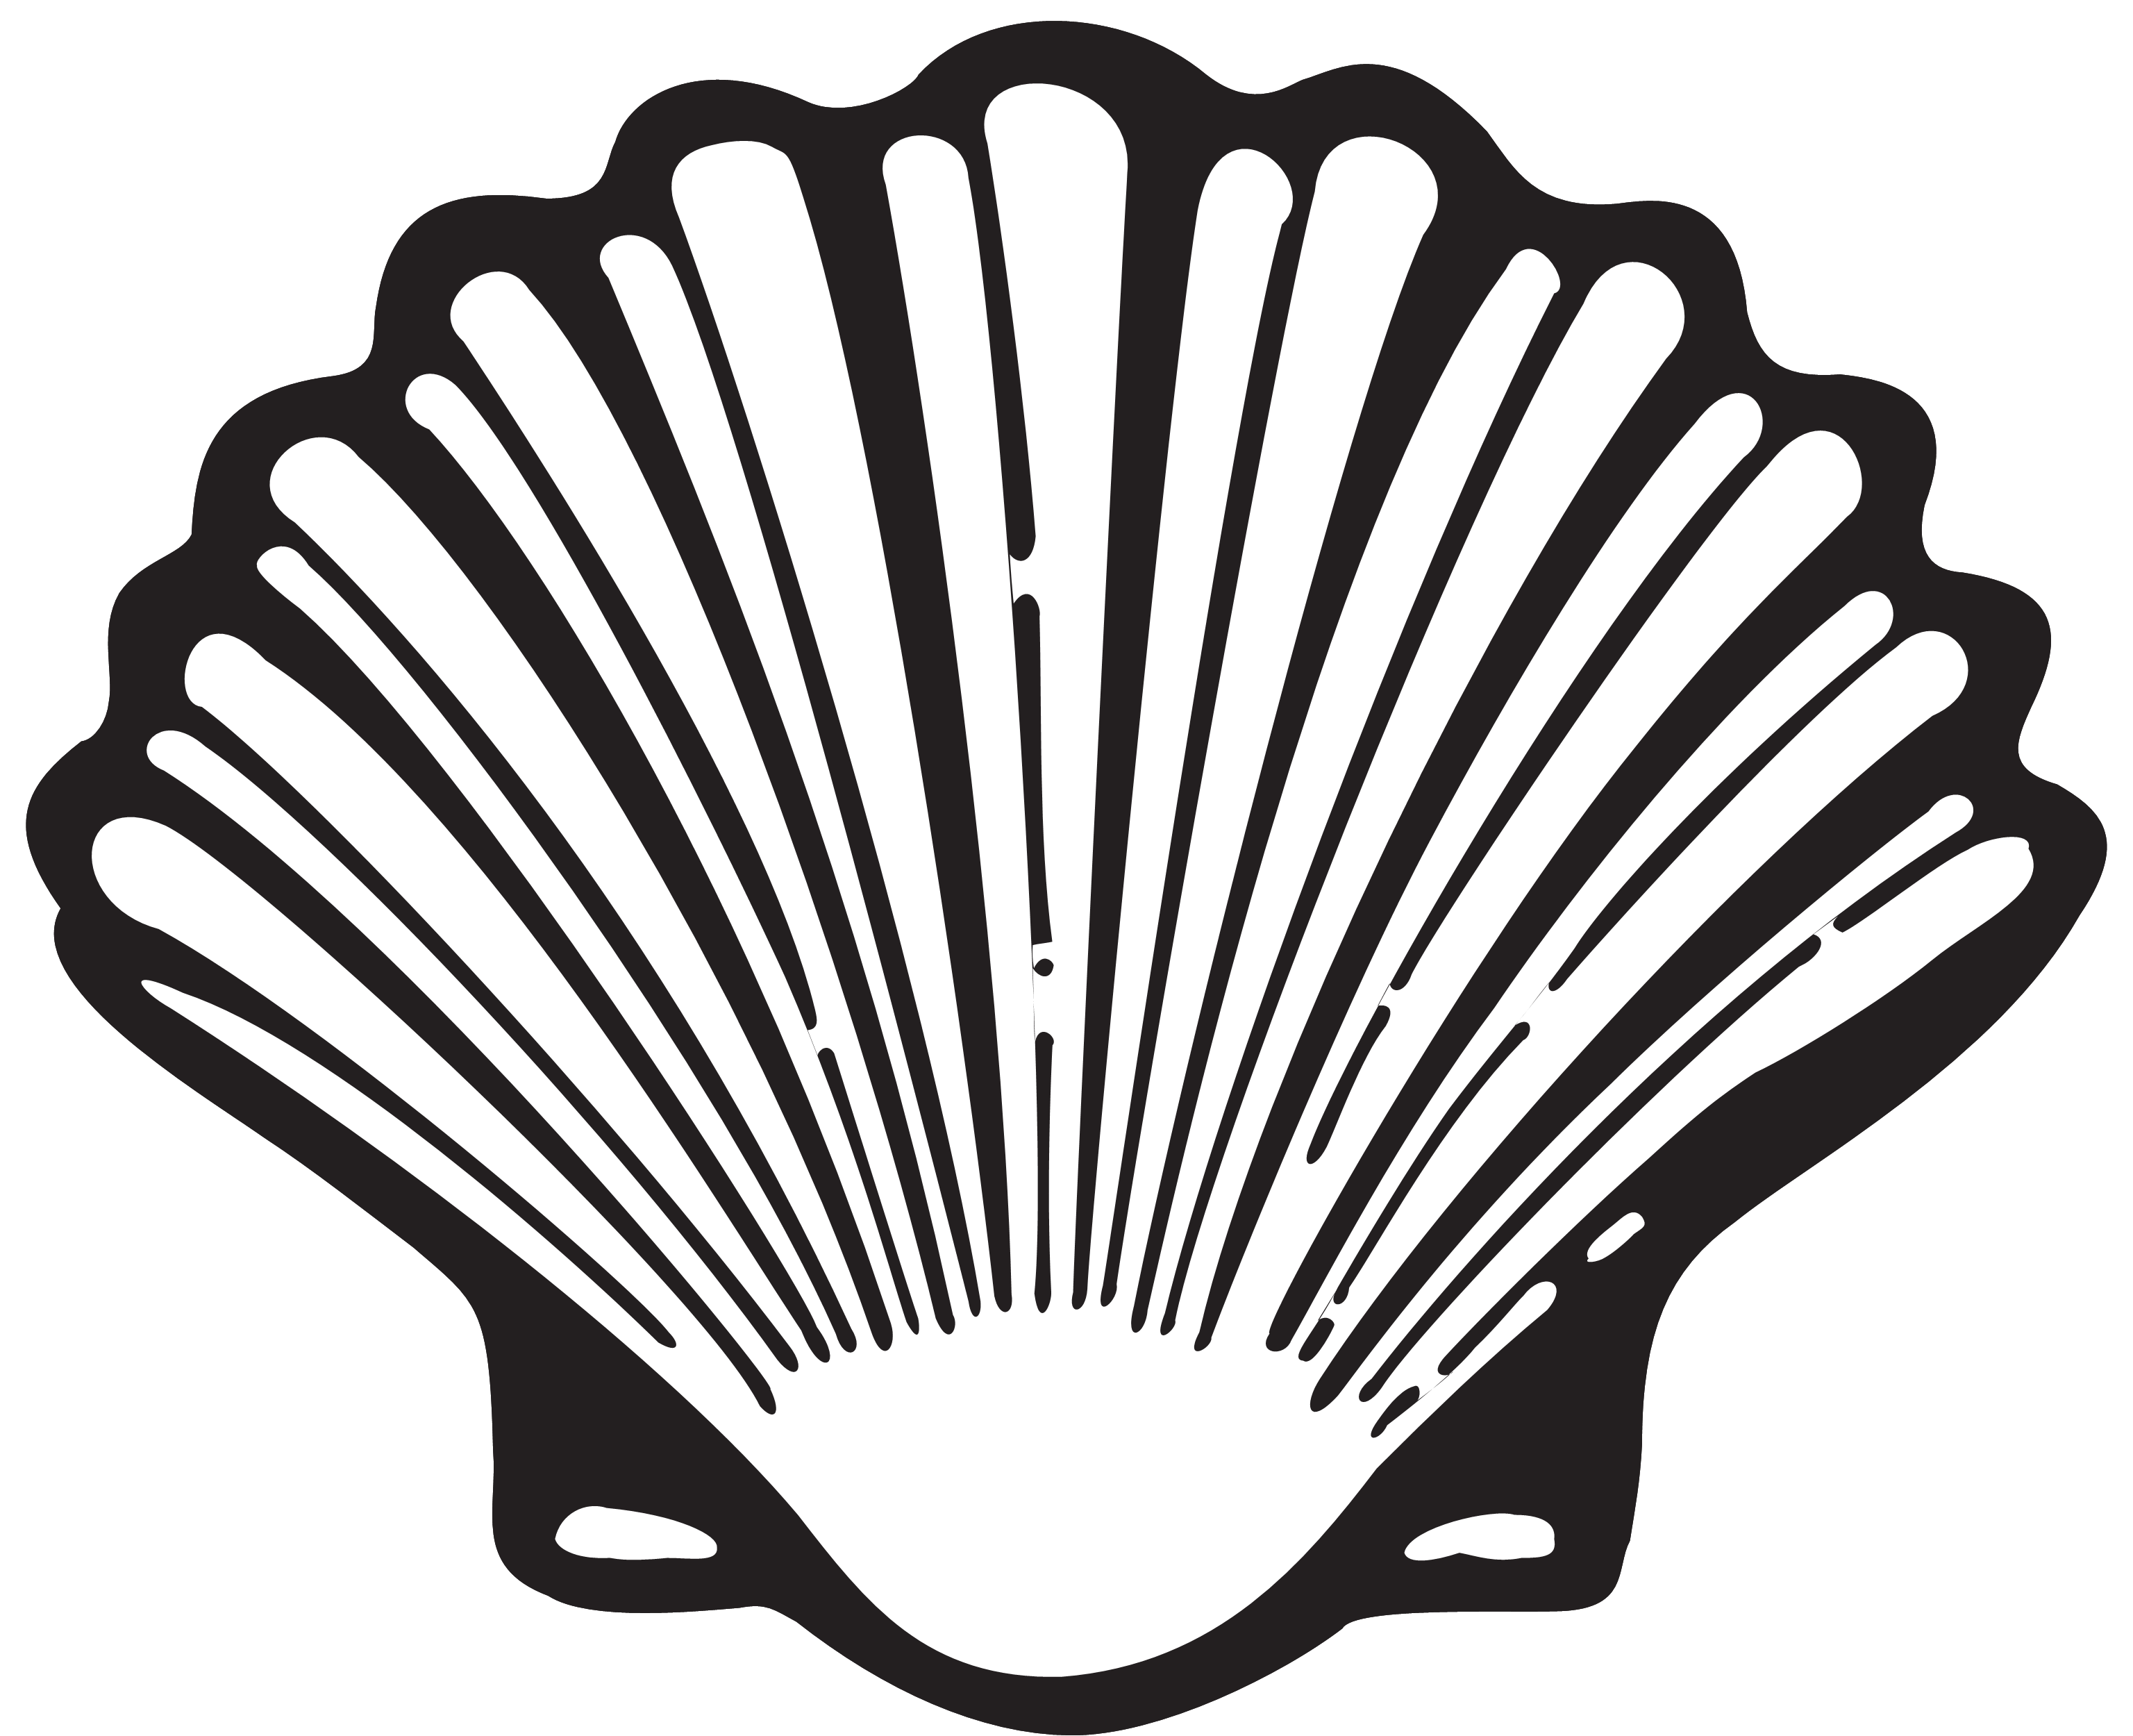 Drawing shell shape. The evolution of a